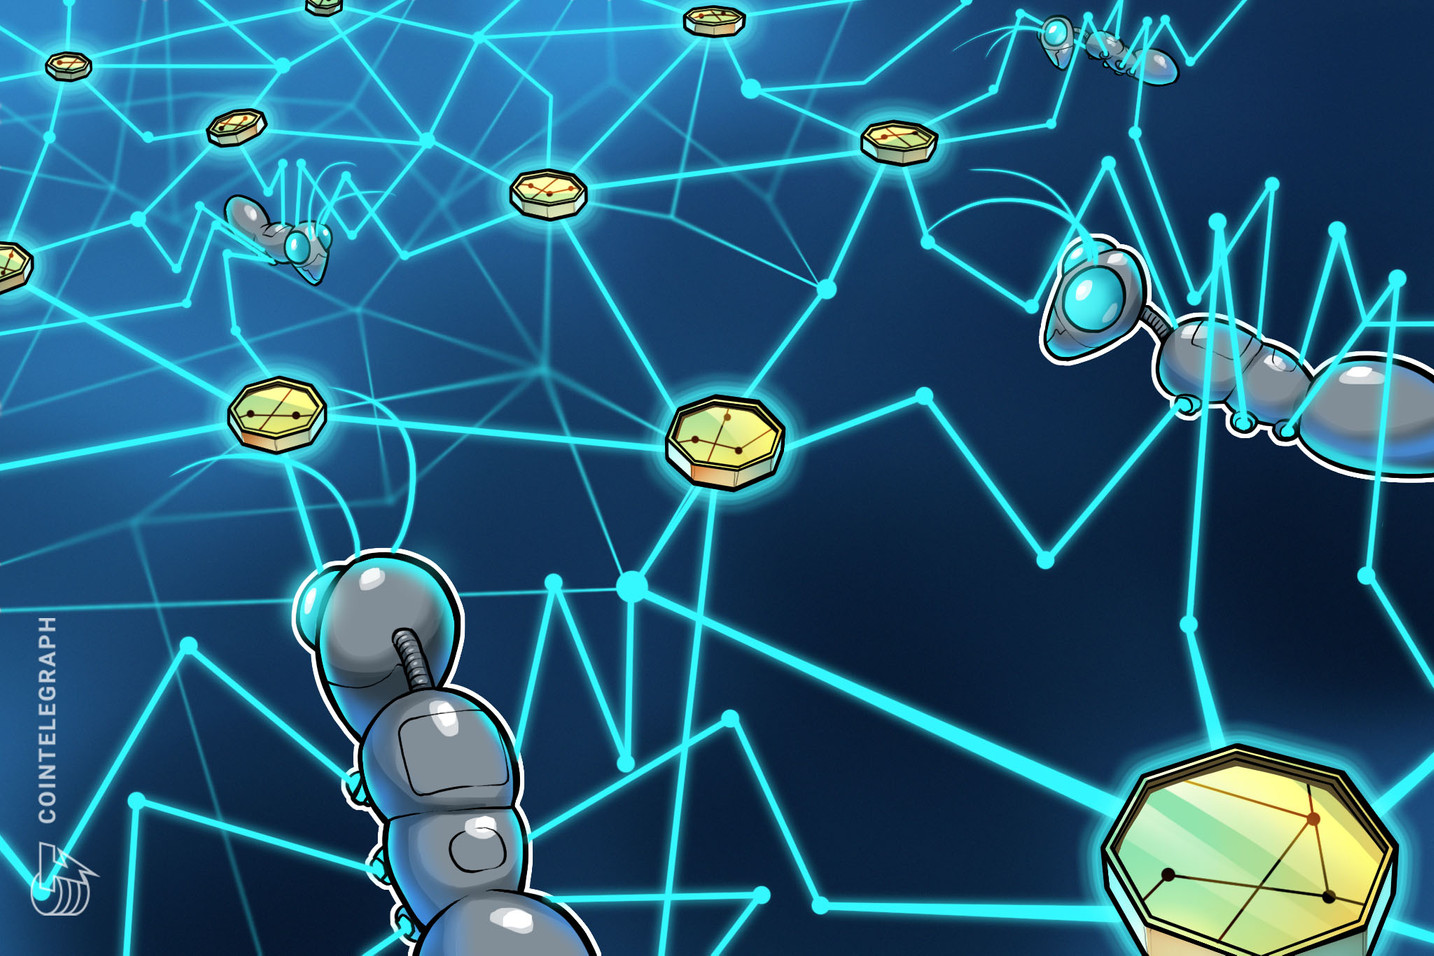 Cellebrite Launches Crypto Tracer Solution to Track Illicit Transactions